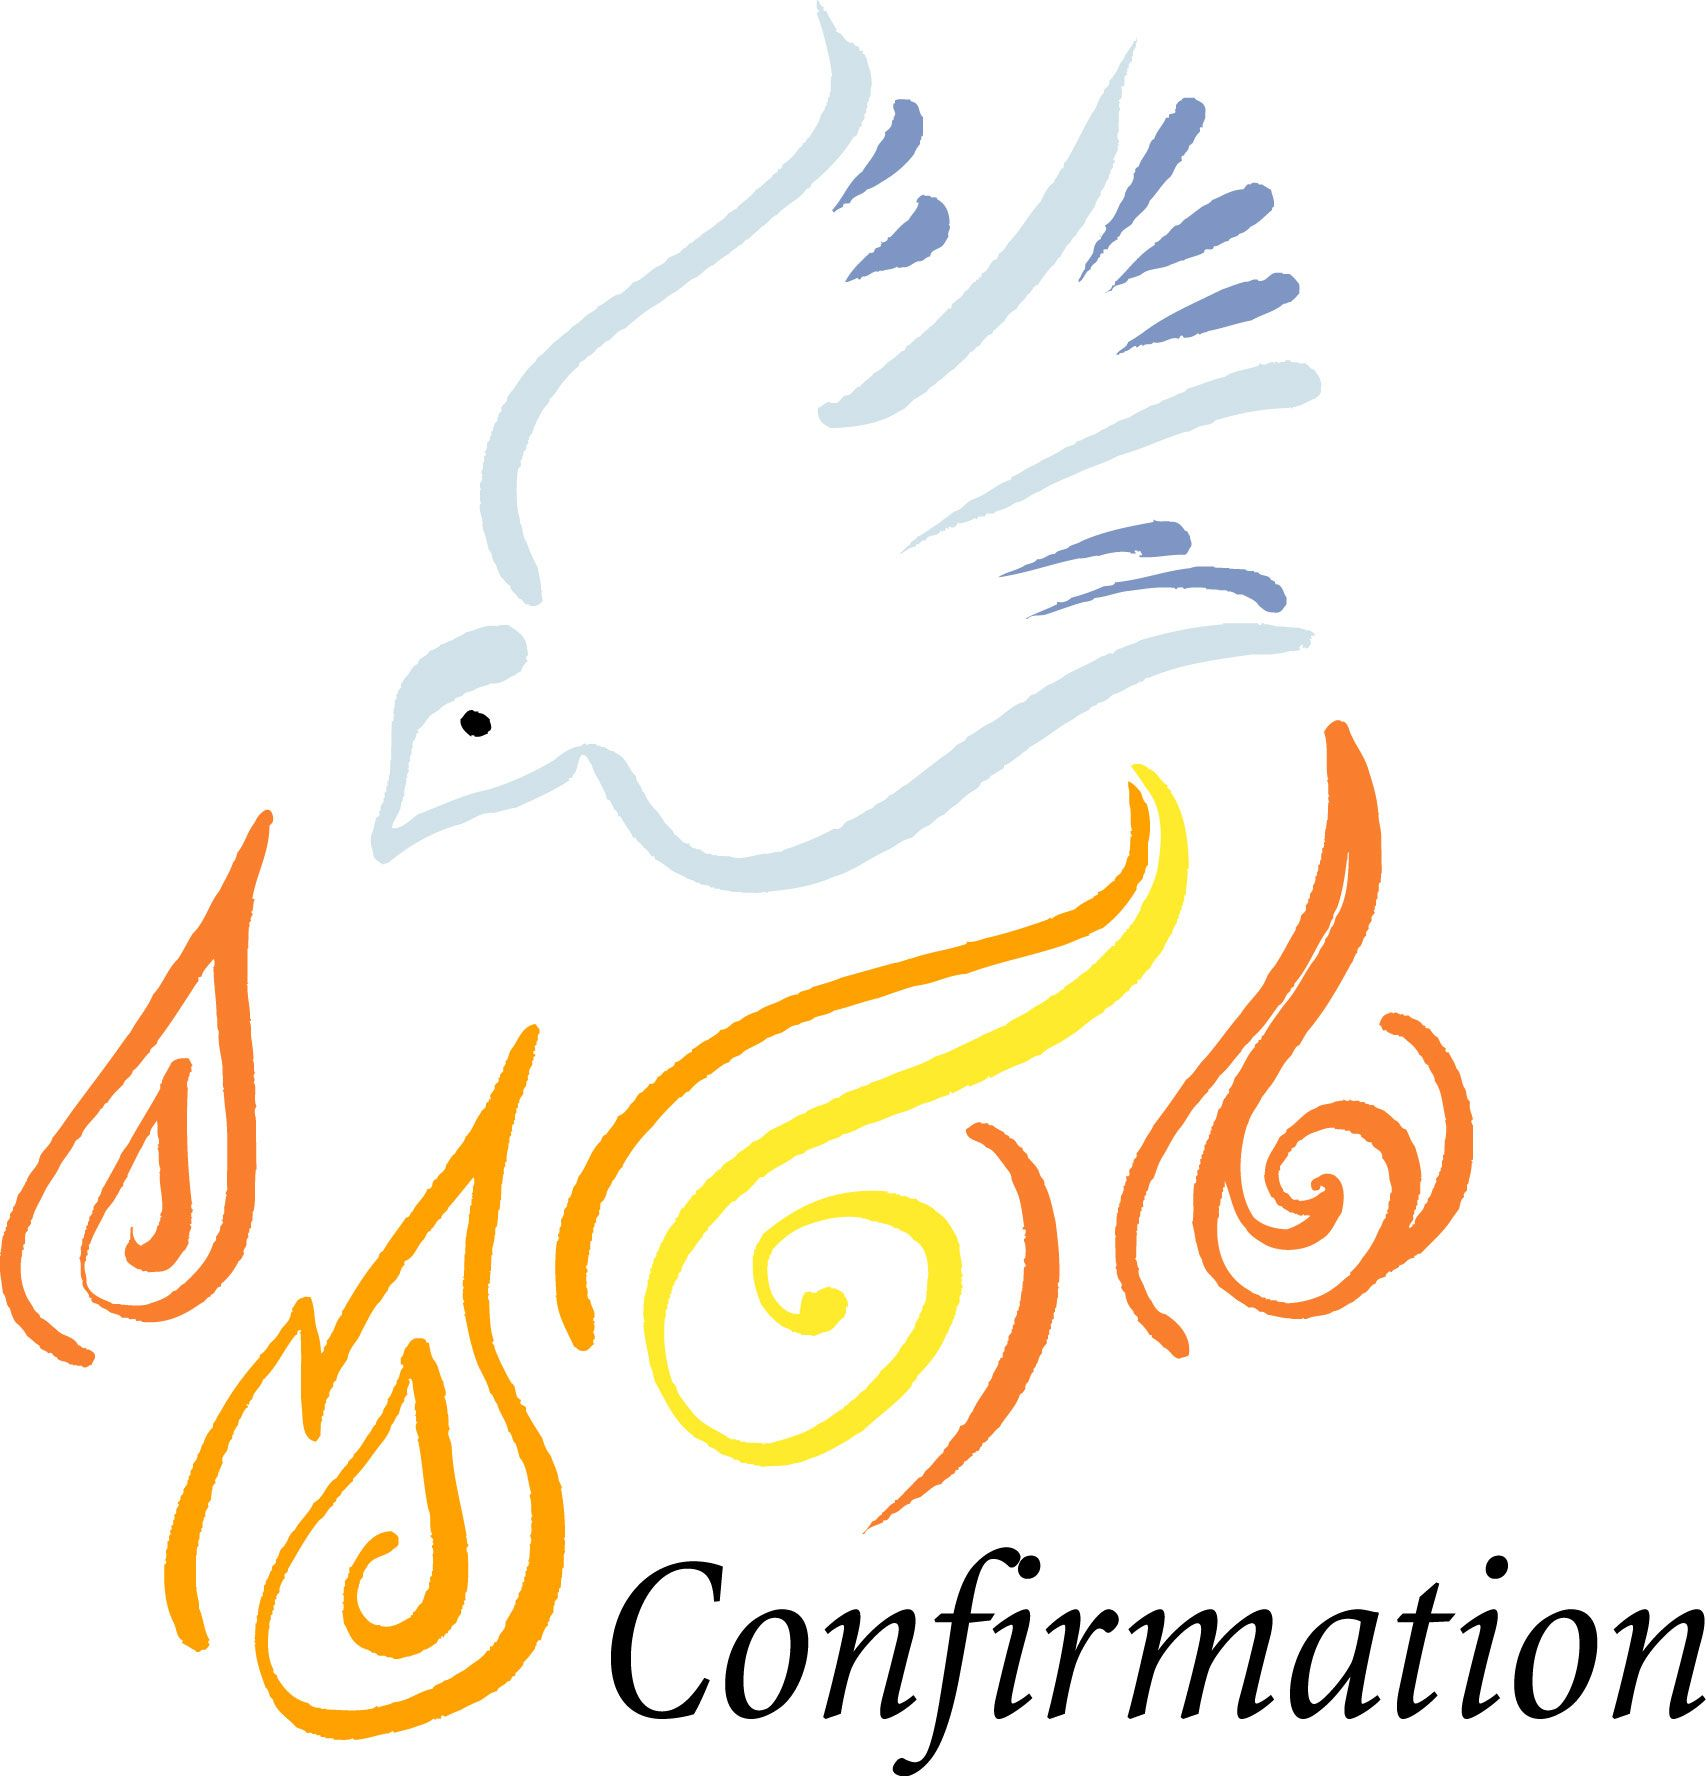 Another symbol of confirmation is fire which signifies a nee.